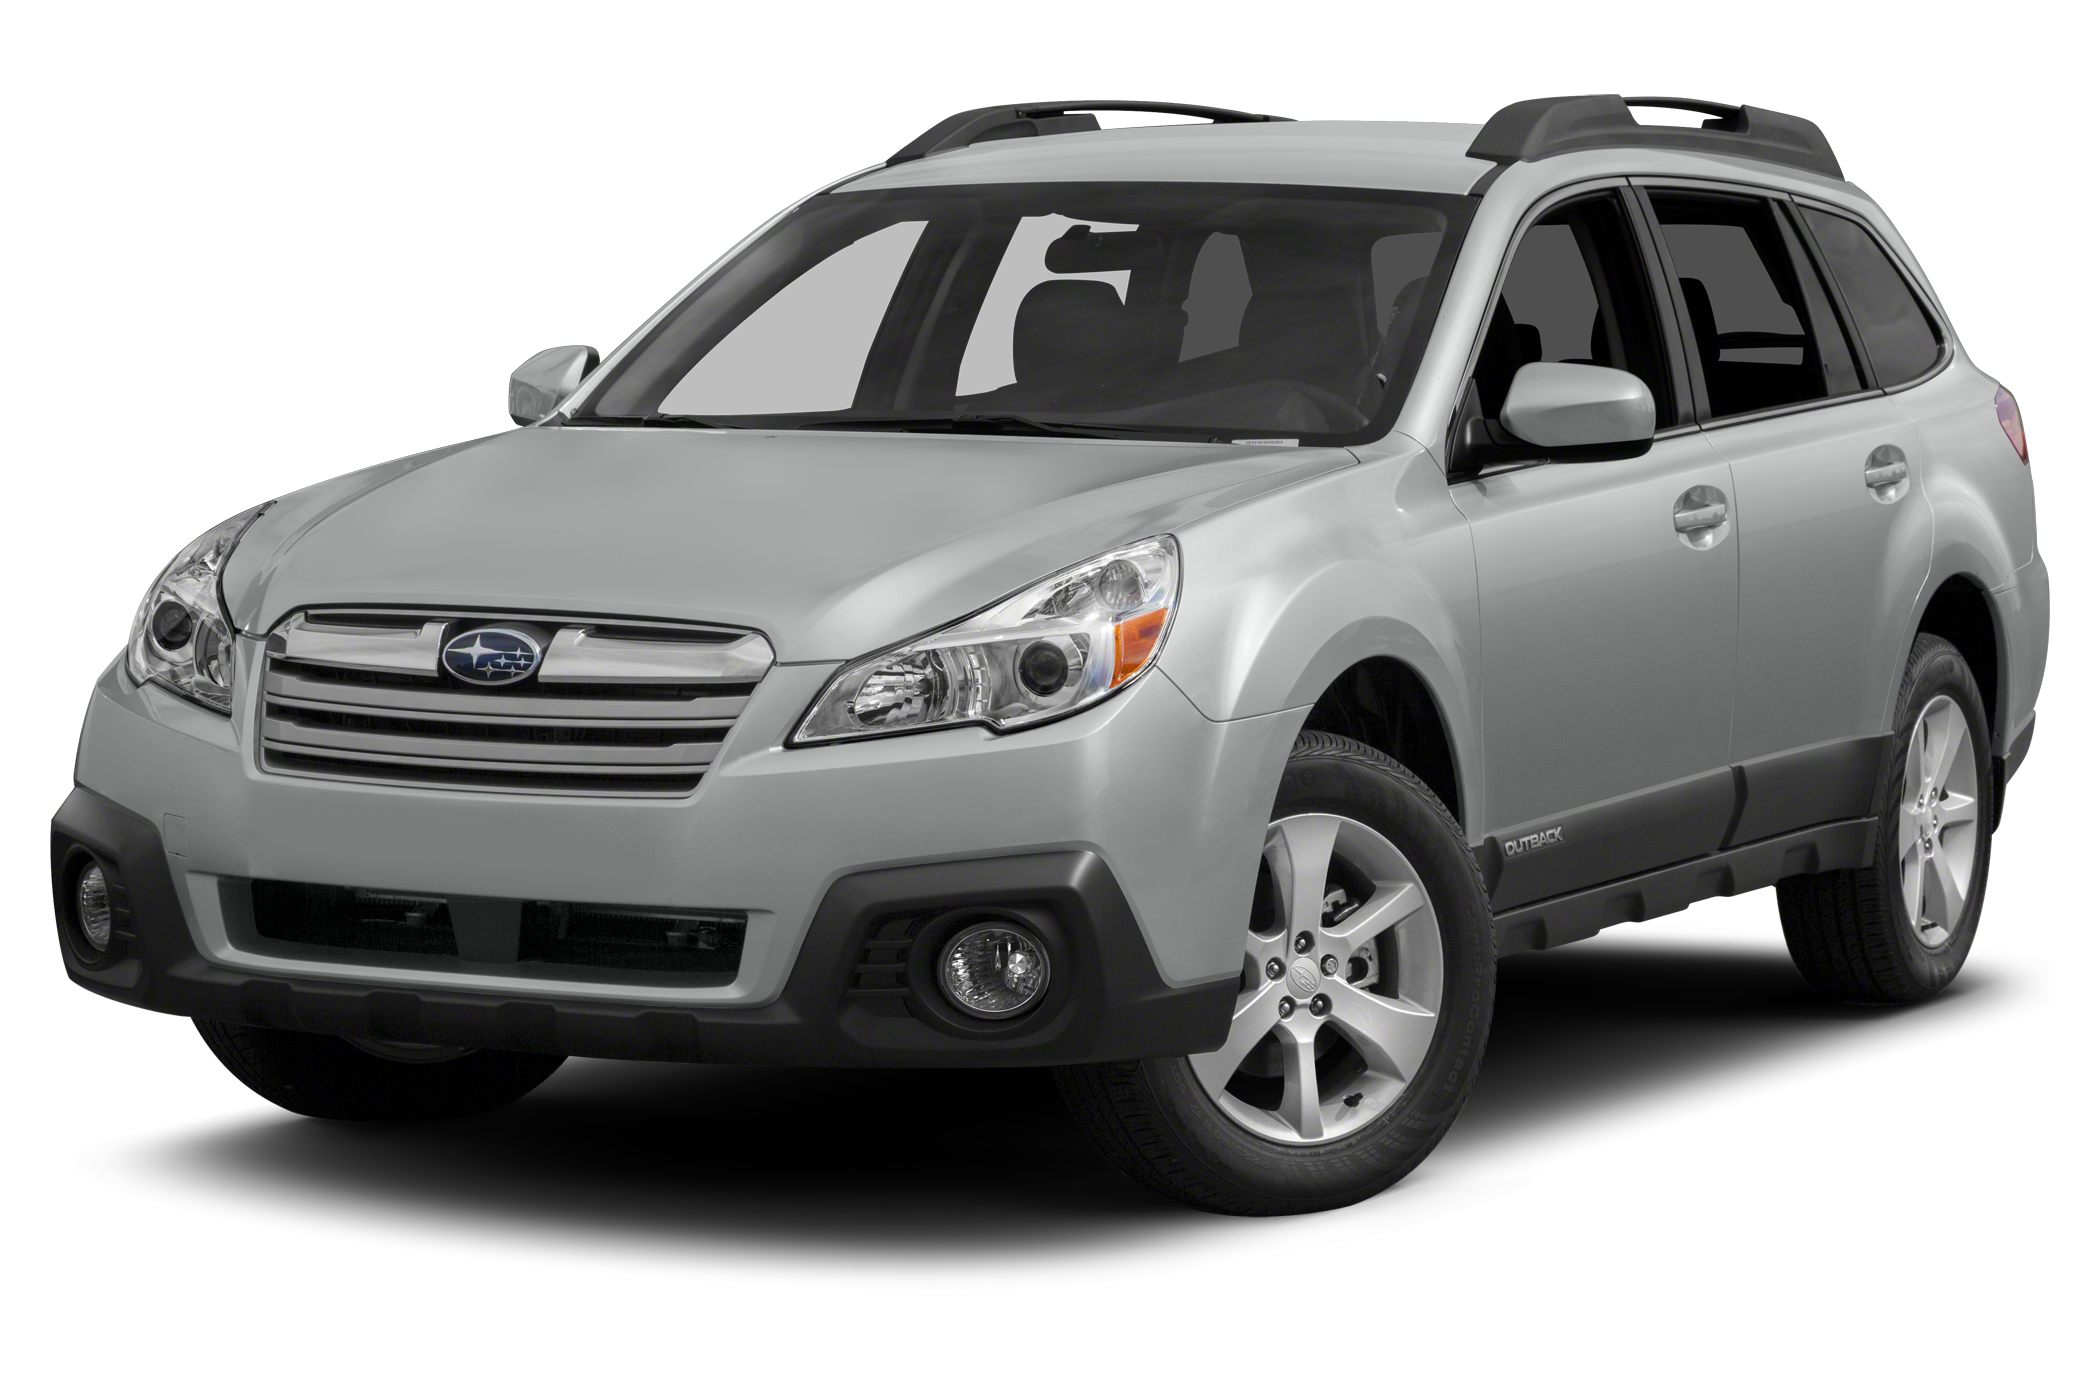 2013 Subaru Outback 2.5i Limited Wagon for sale in Marquette for $27,995 with 13,367 miles